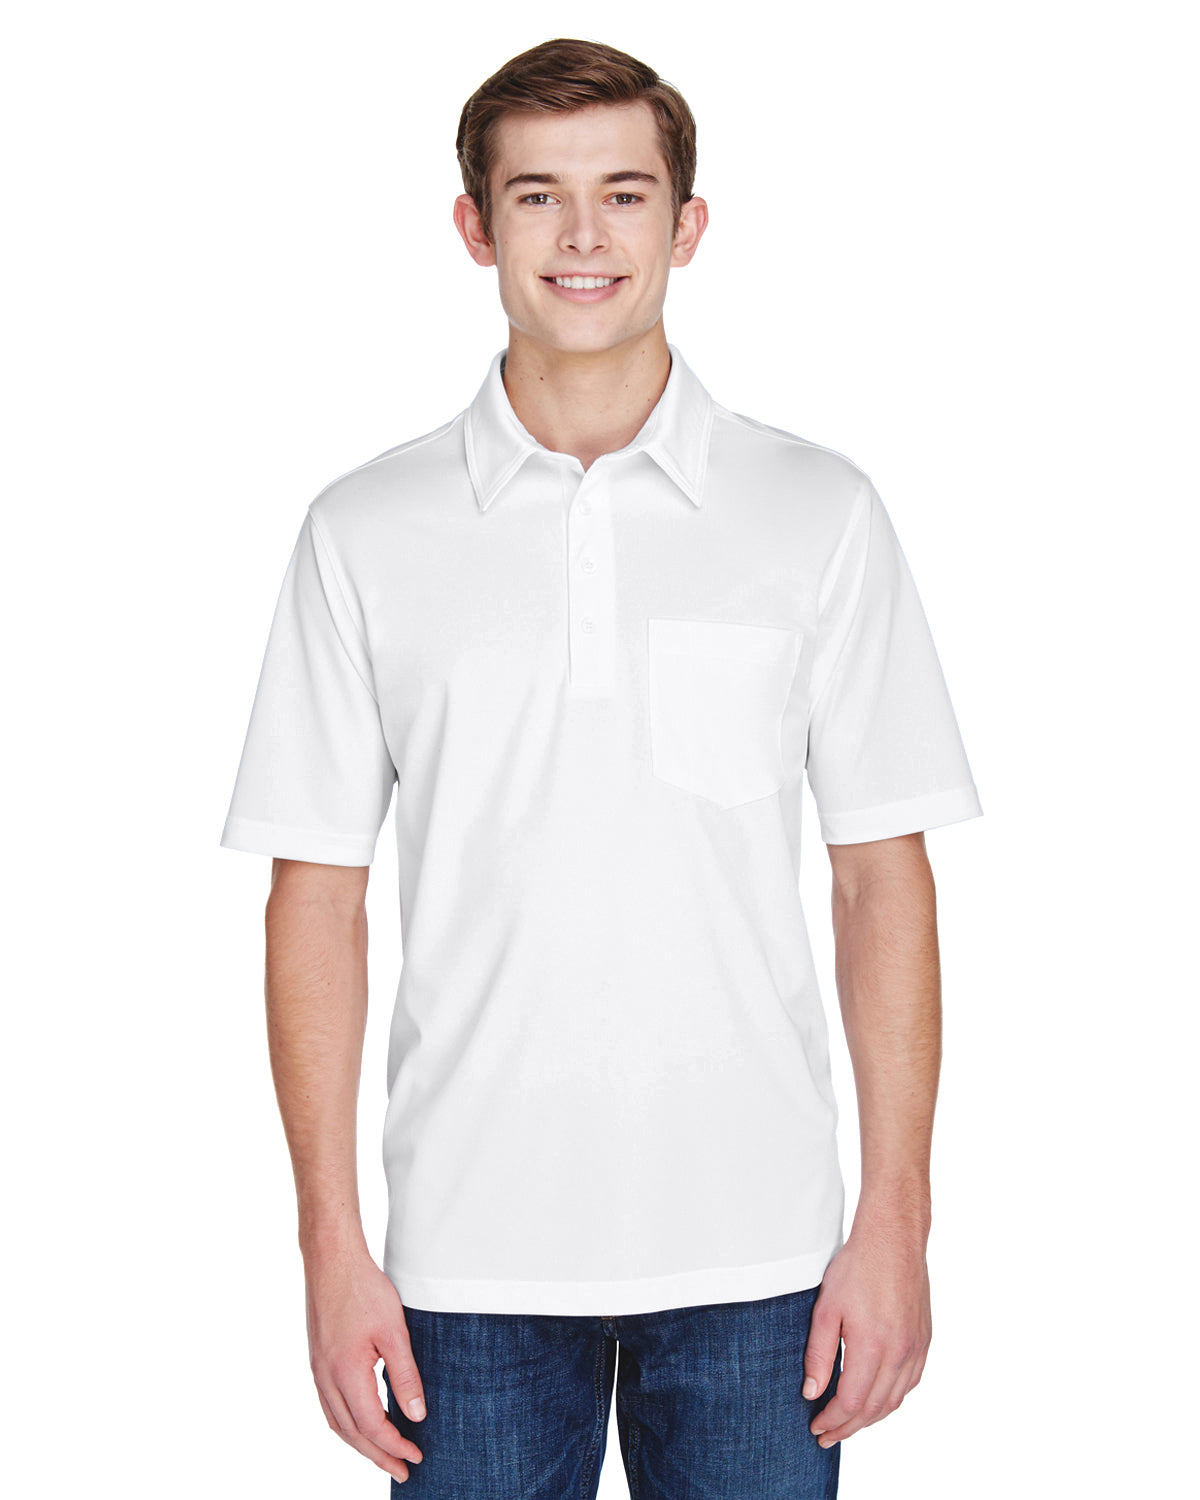 Rainwater's Straight Collar Pocket Knit Polo in White - Rainwater's Men's Clothing and Tuxedo Rental